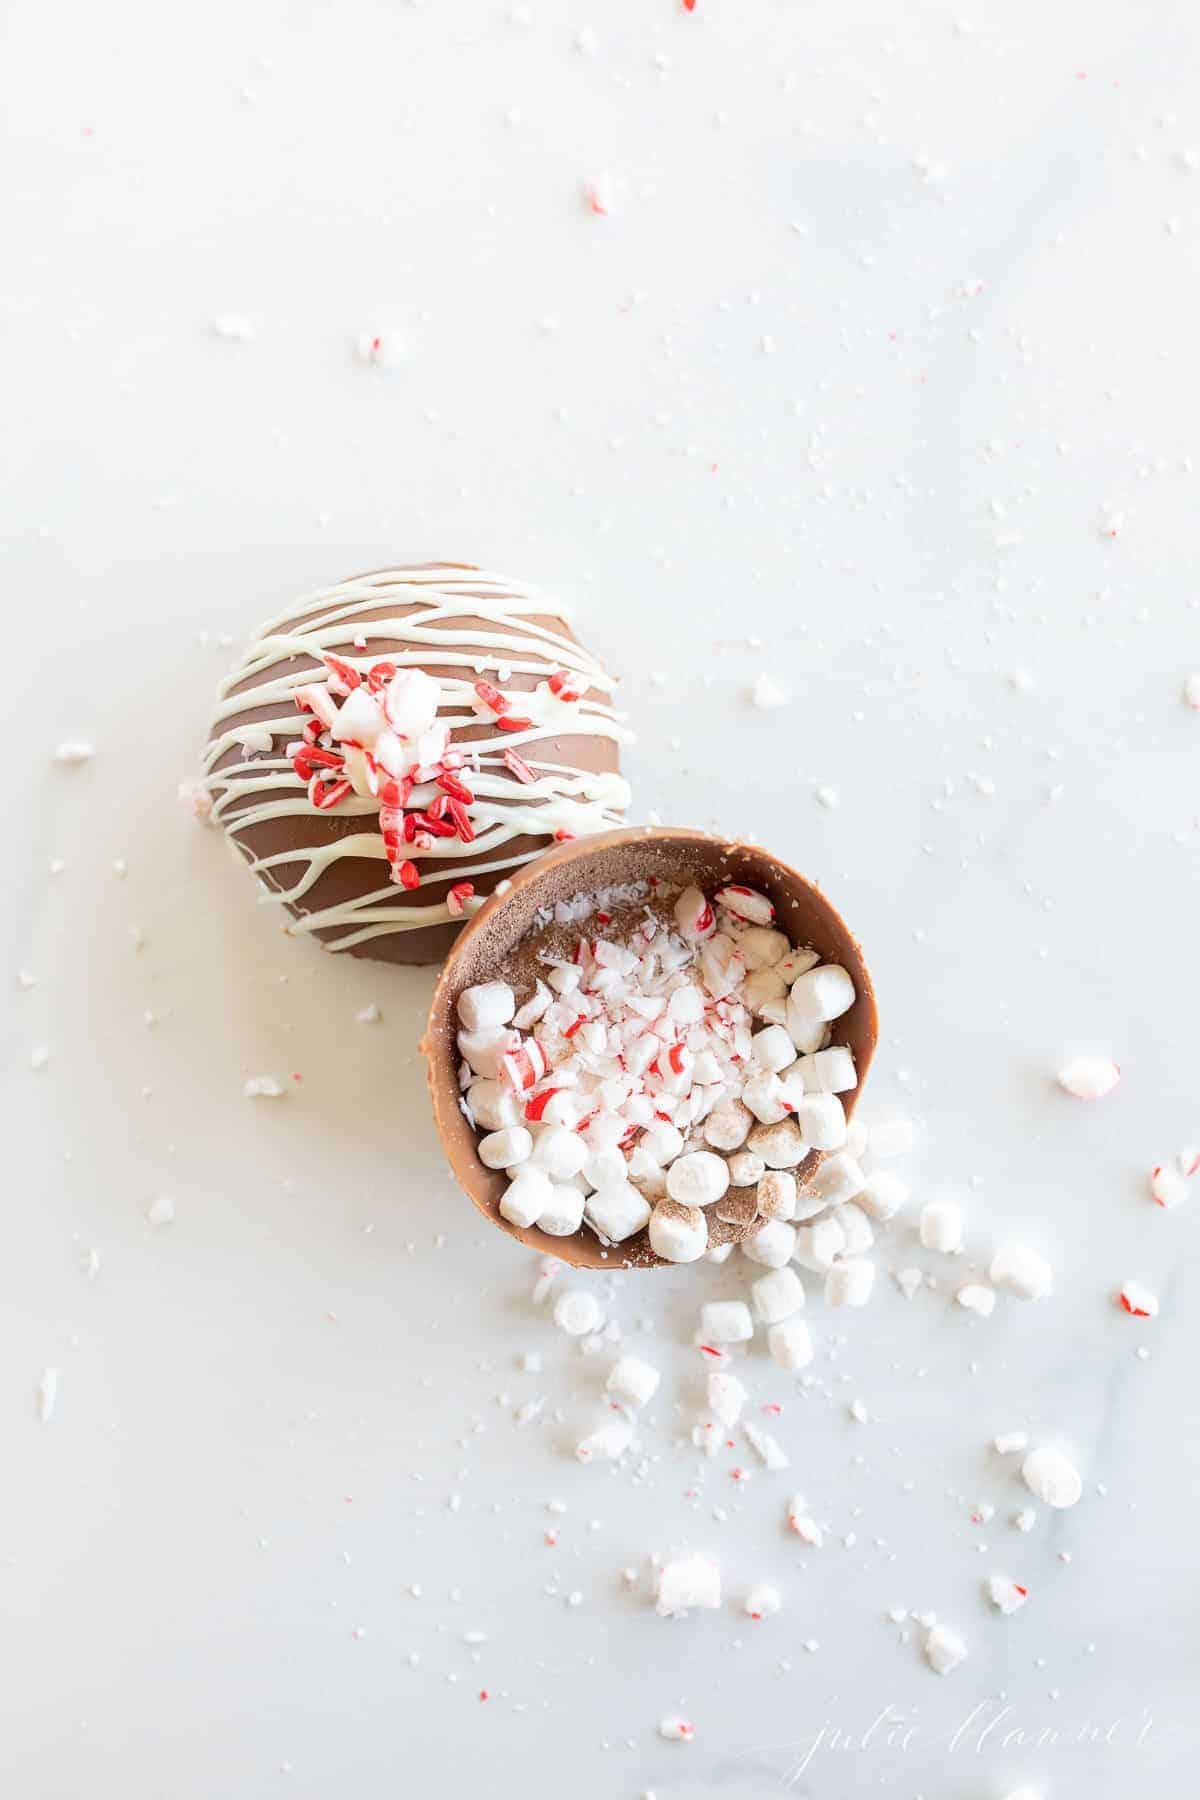 A peppermint hot chocolate bomb, with marshmallows, cocoa mix and peppermint spilling out onto a marble surface.